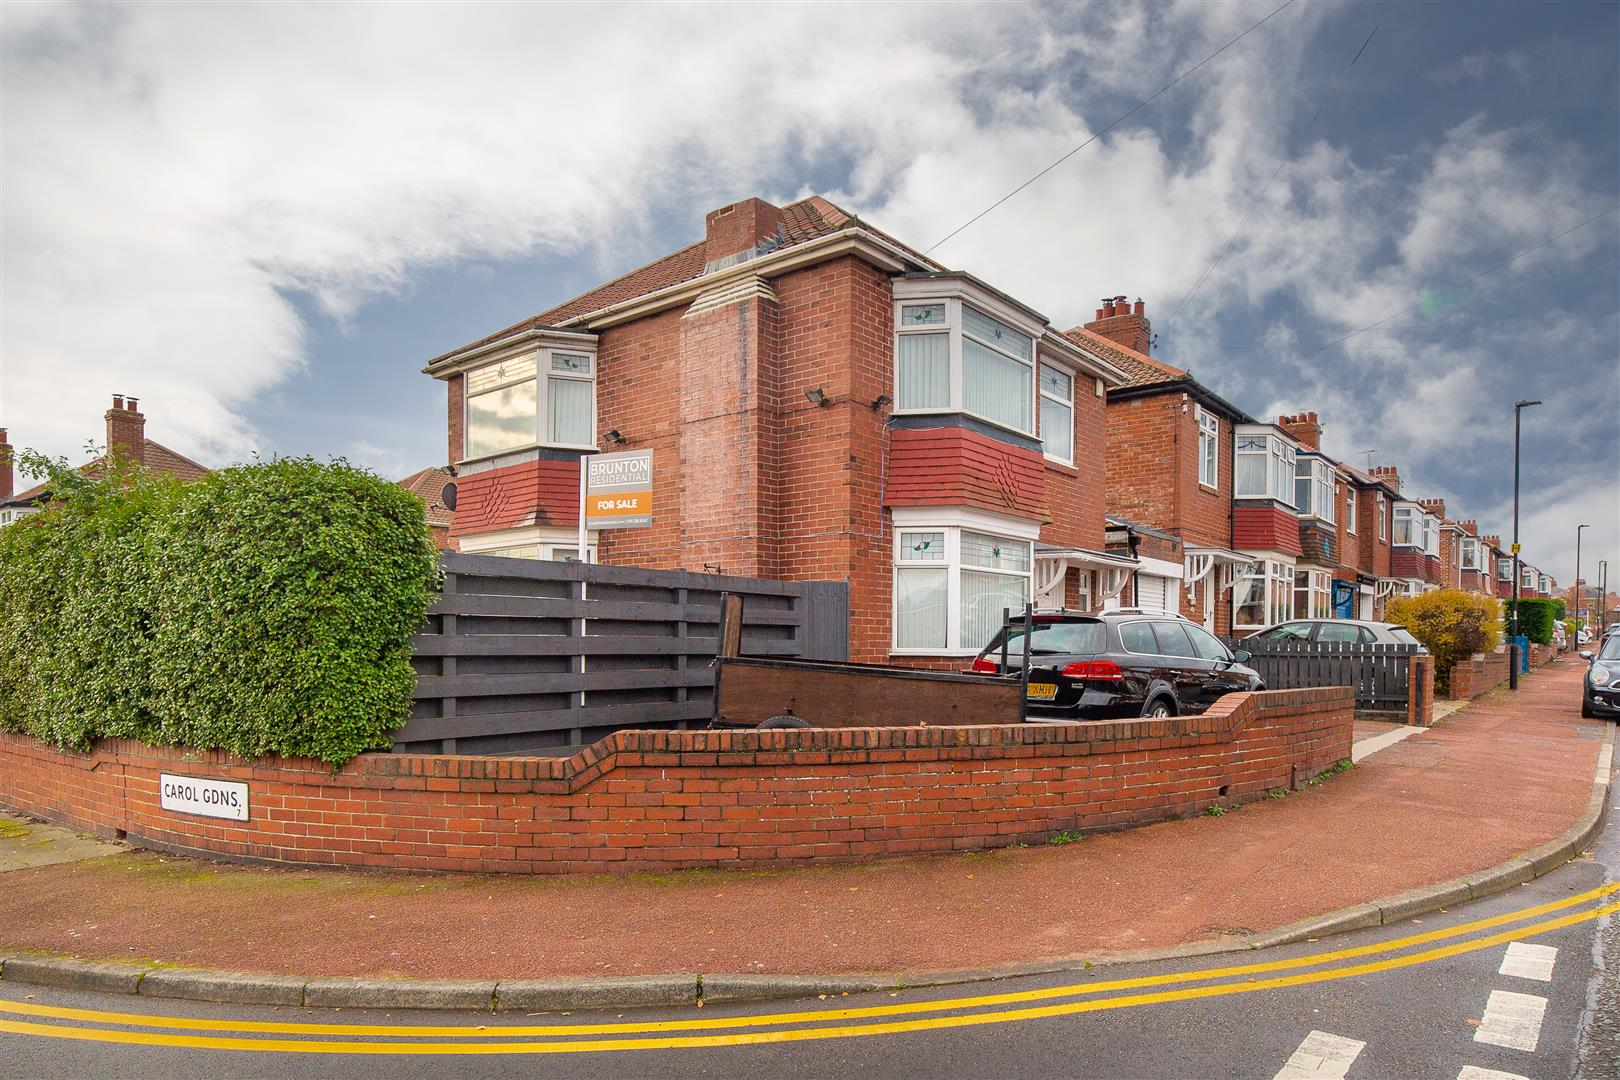 3 bed detached house for sale in High Heaton, NE7 7QP  - Property Image 1